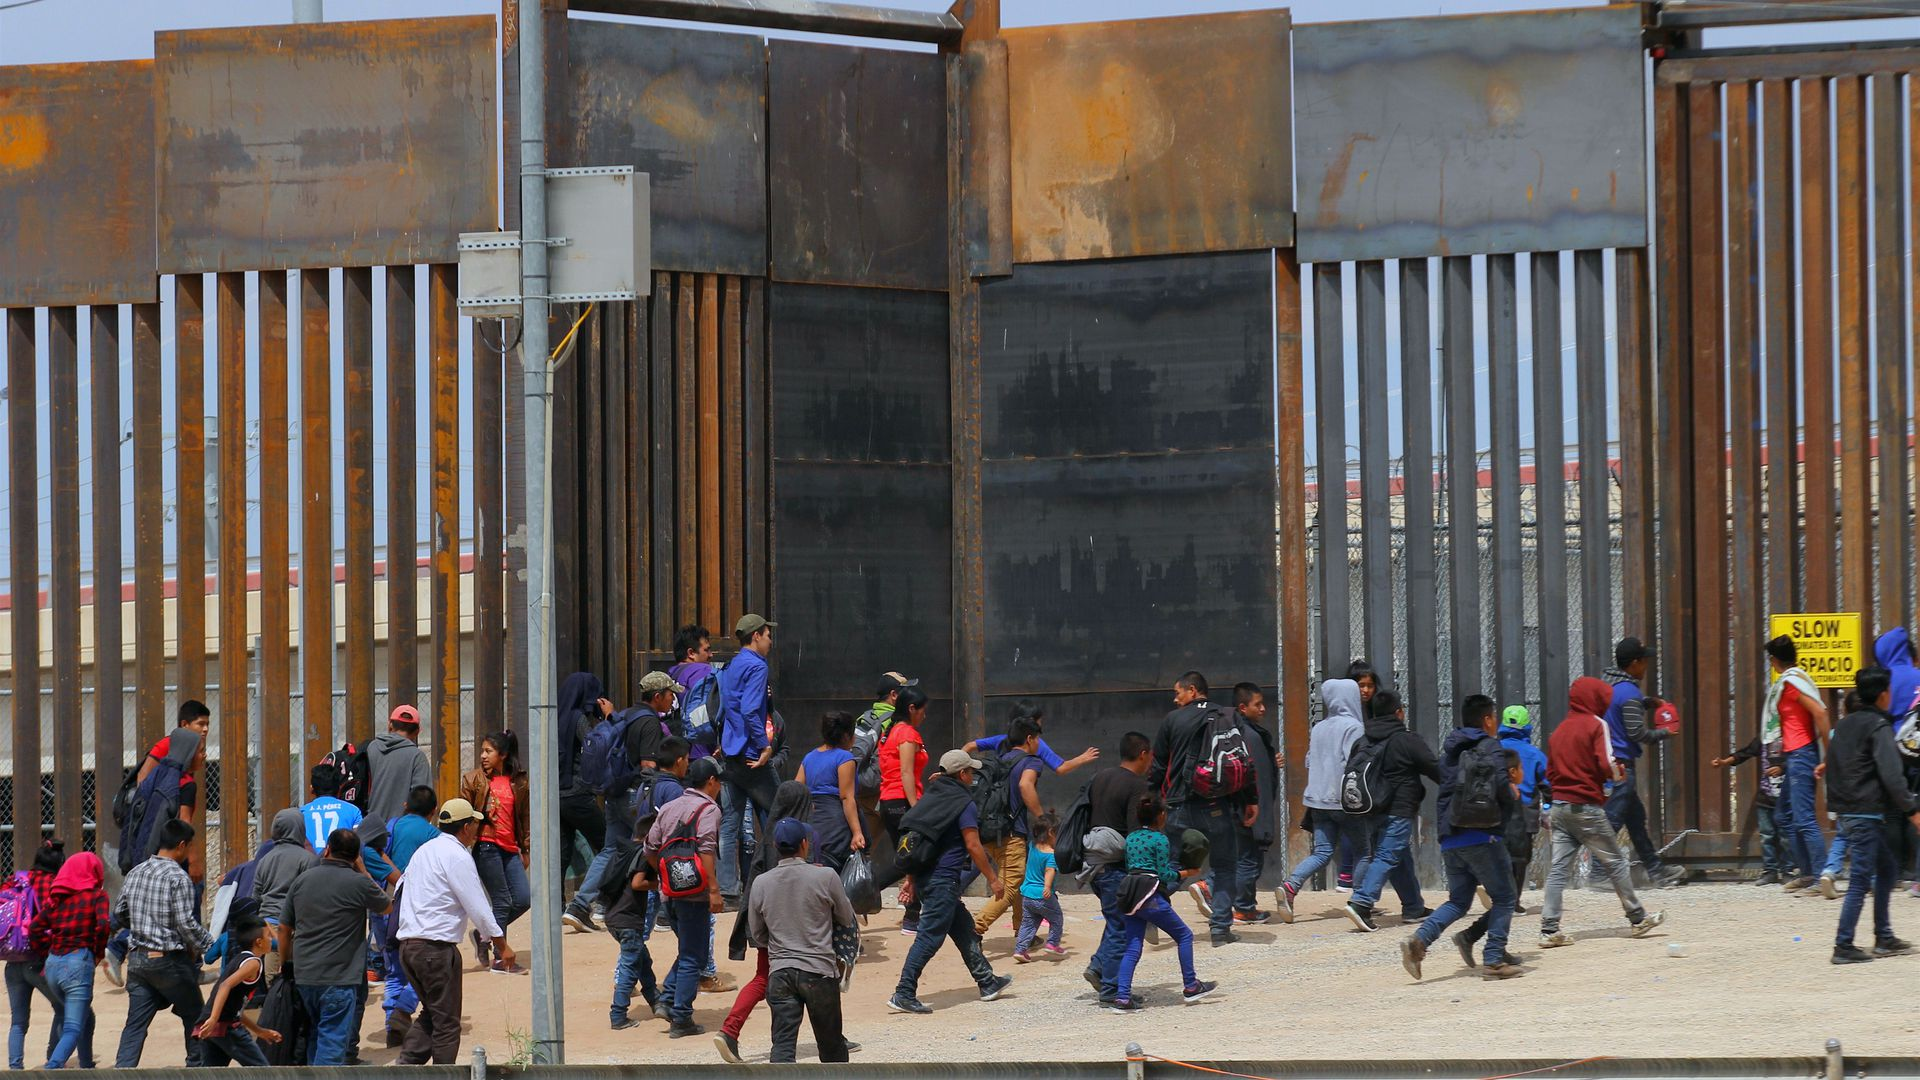 Immigrants crowding a border wall at the U.S. southern border.